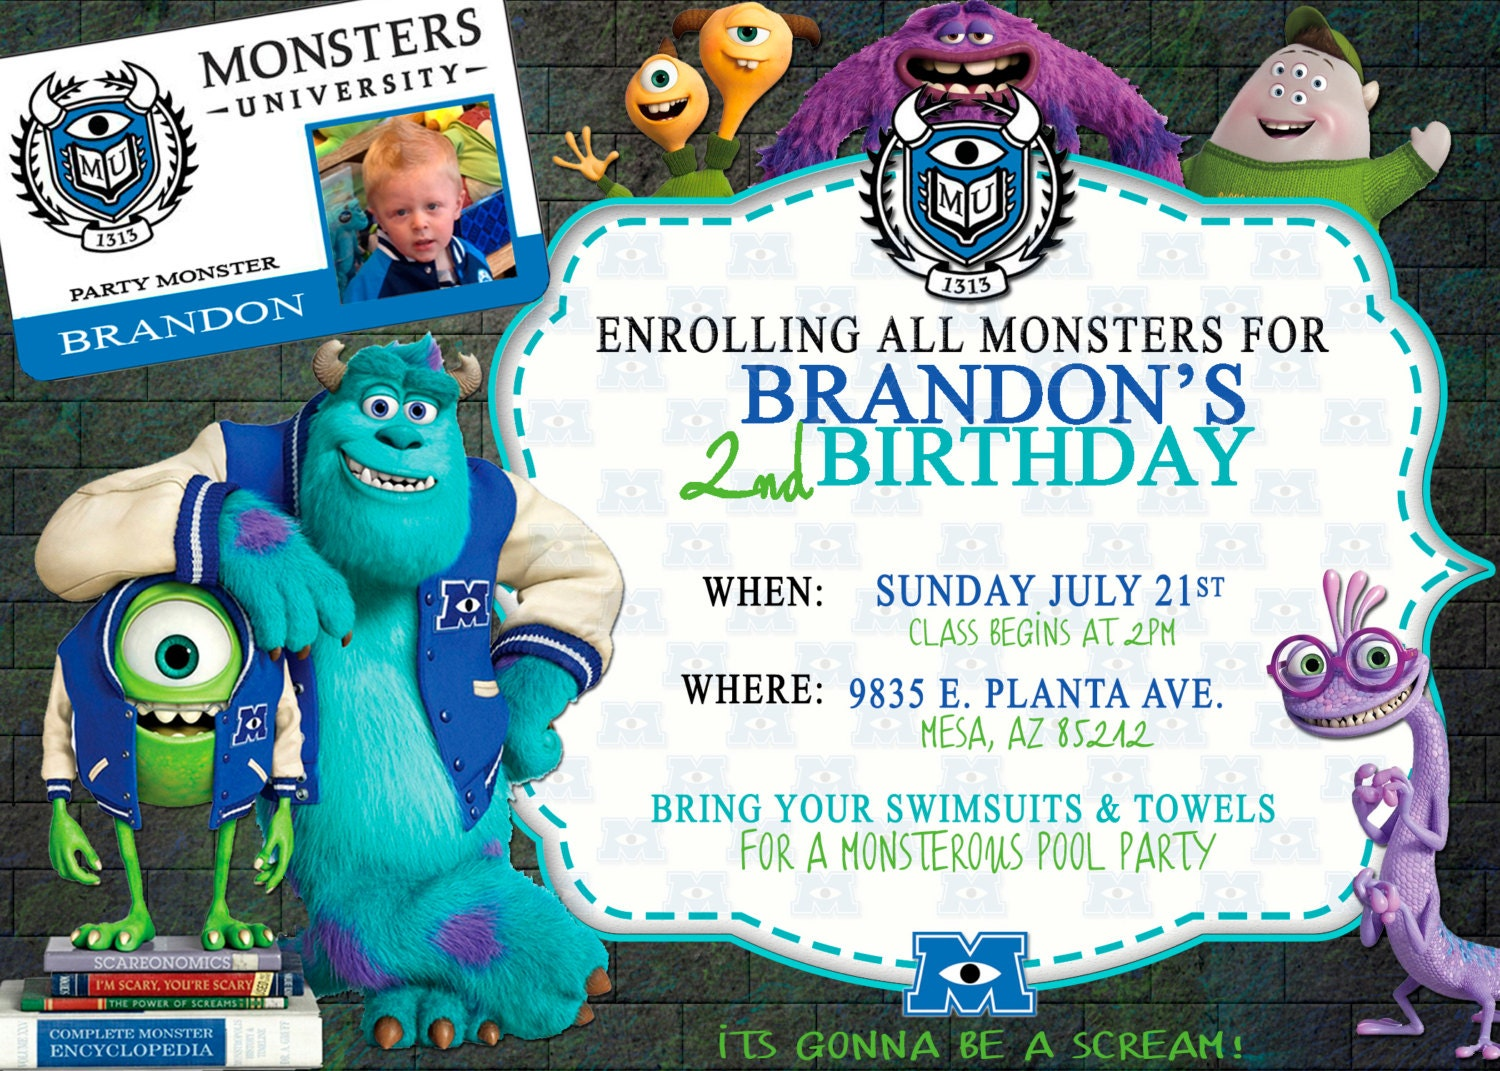 Monsters University invitation